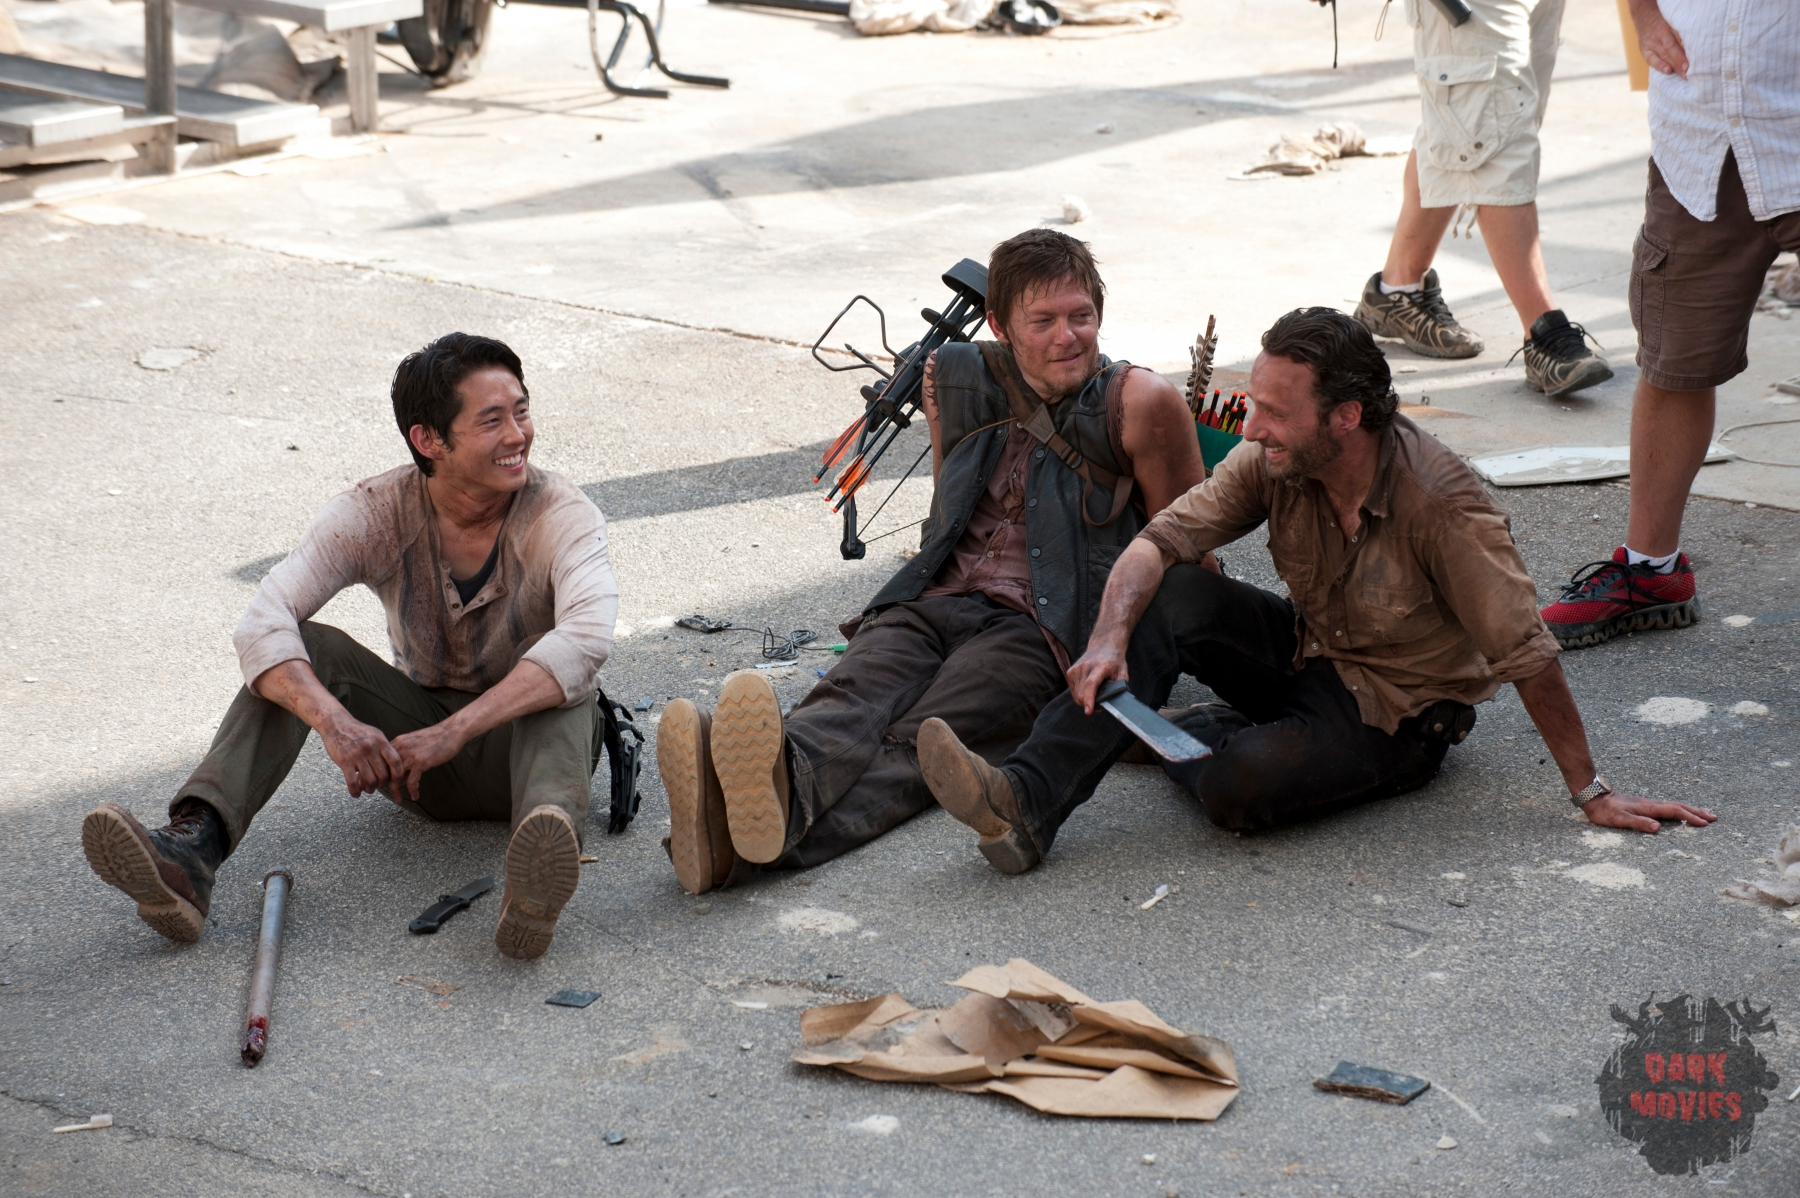 Glenn (Steven Yeun), Daryl Dixon (Norman Reedus) and Rick Grimes (Andrew Lincoln) - The Walking Dead - Season 3, Episode 1 - Photo Credit: Gene Page/AMC